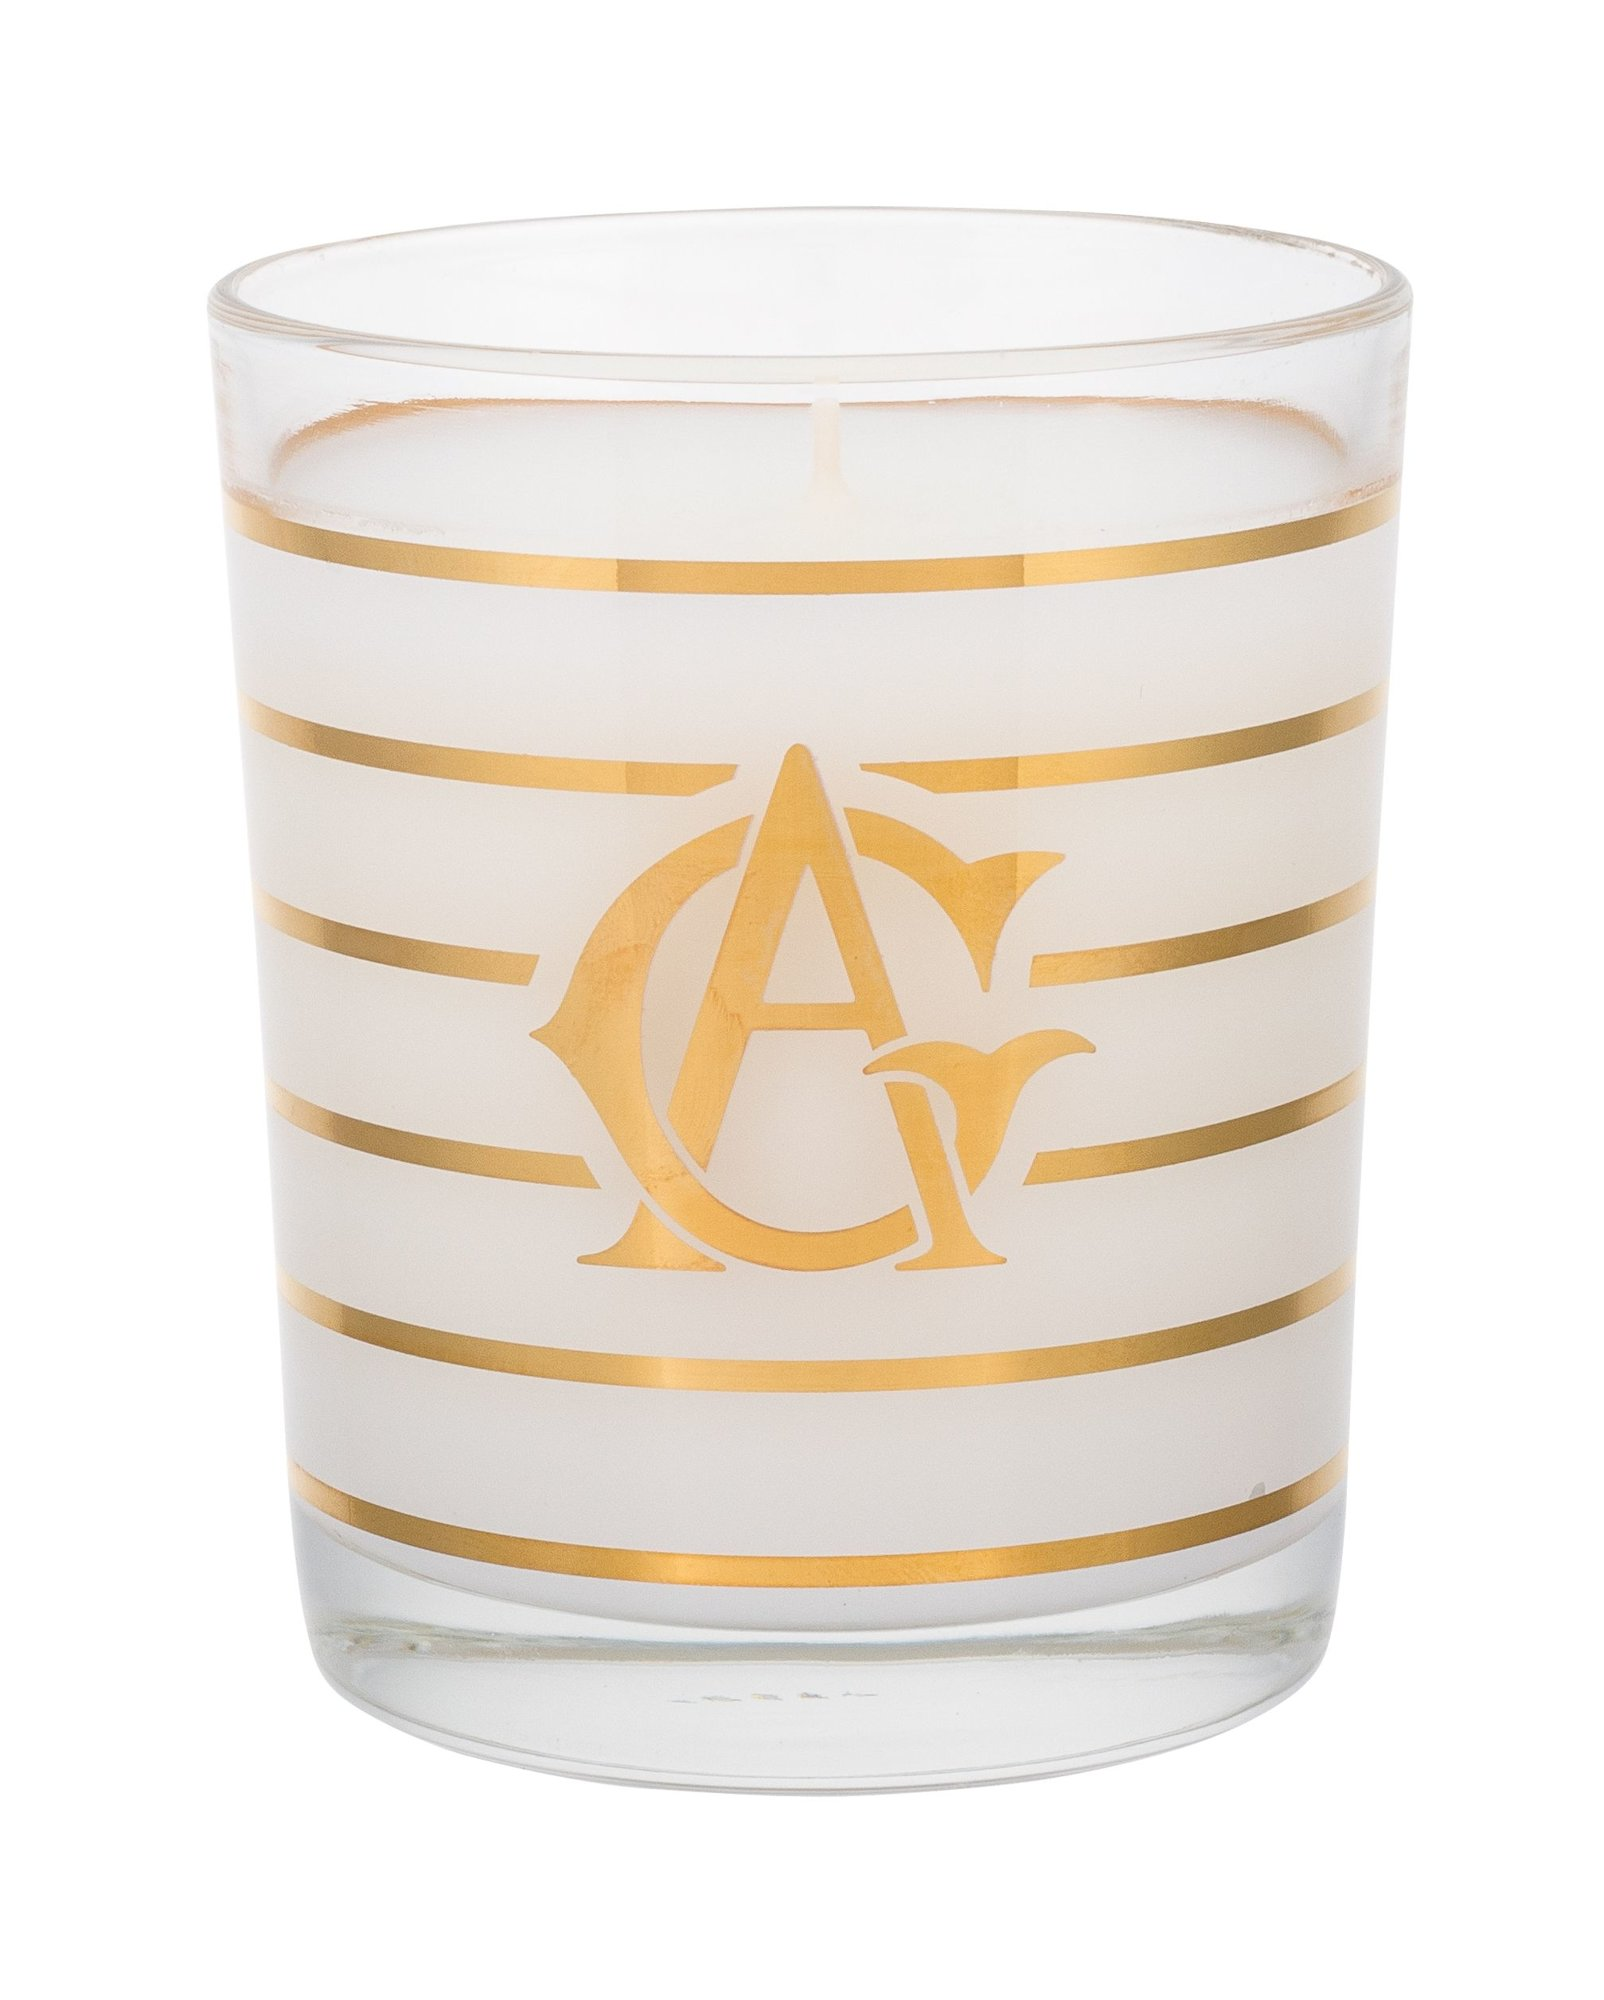 Annick Goutal Petite Chérie Scented Candle 175ml